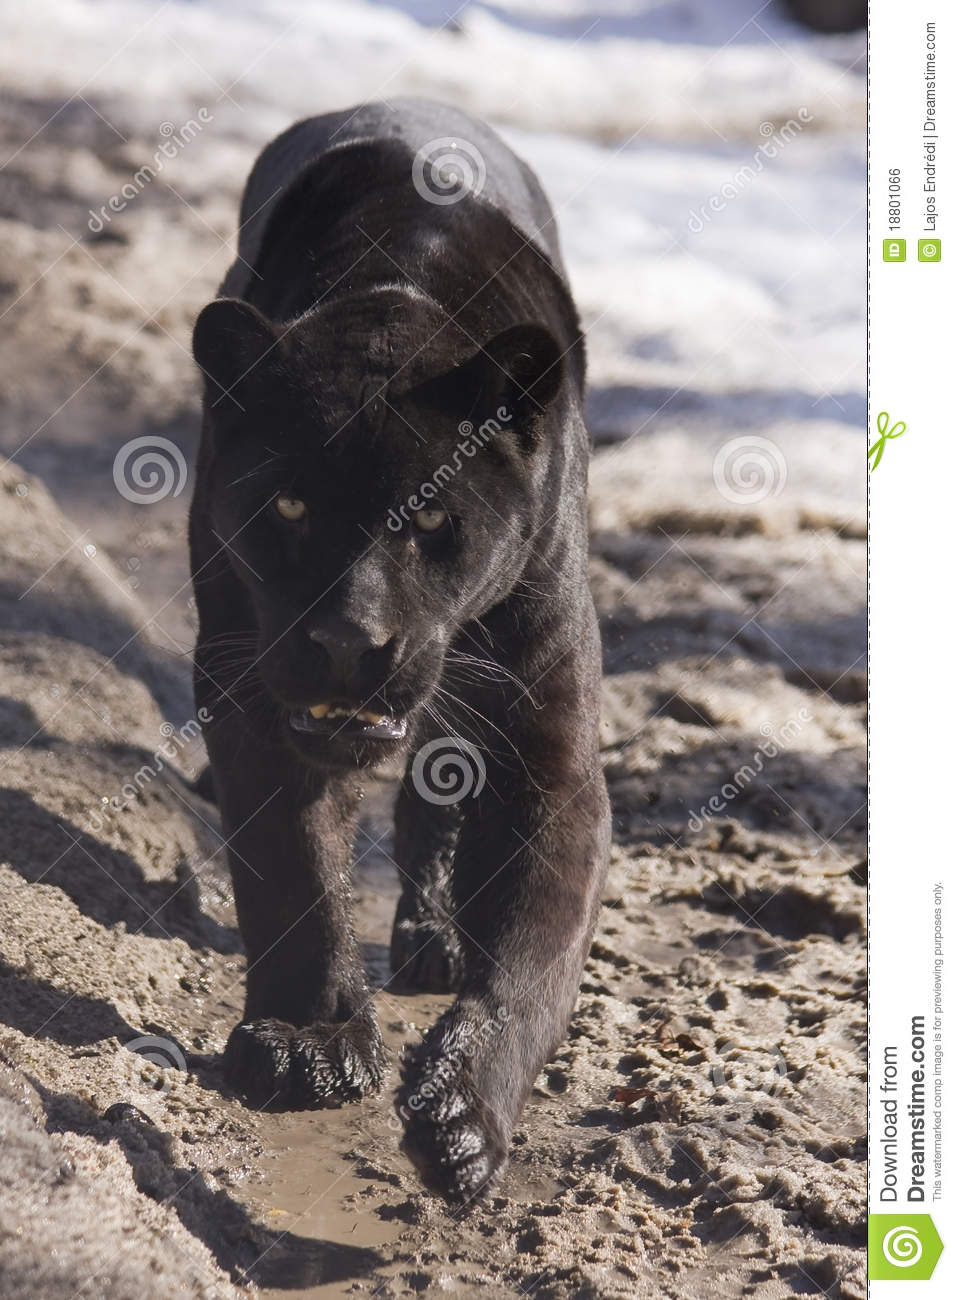 Black jaguar (Panthera onca)